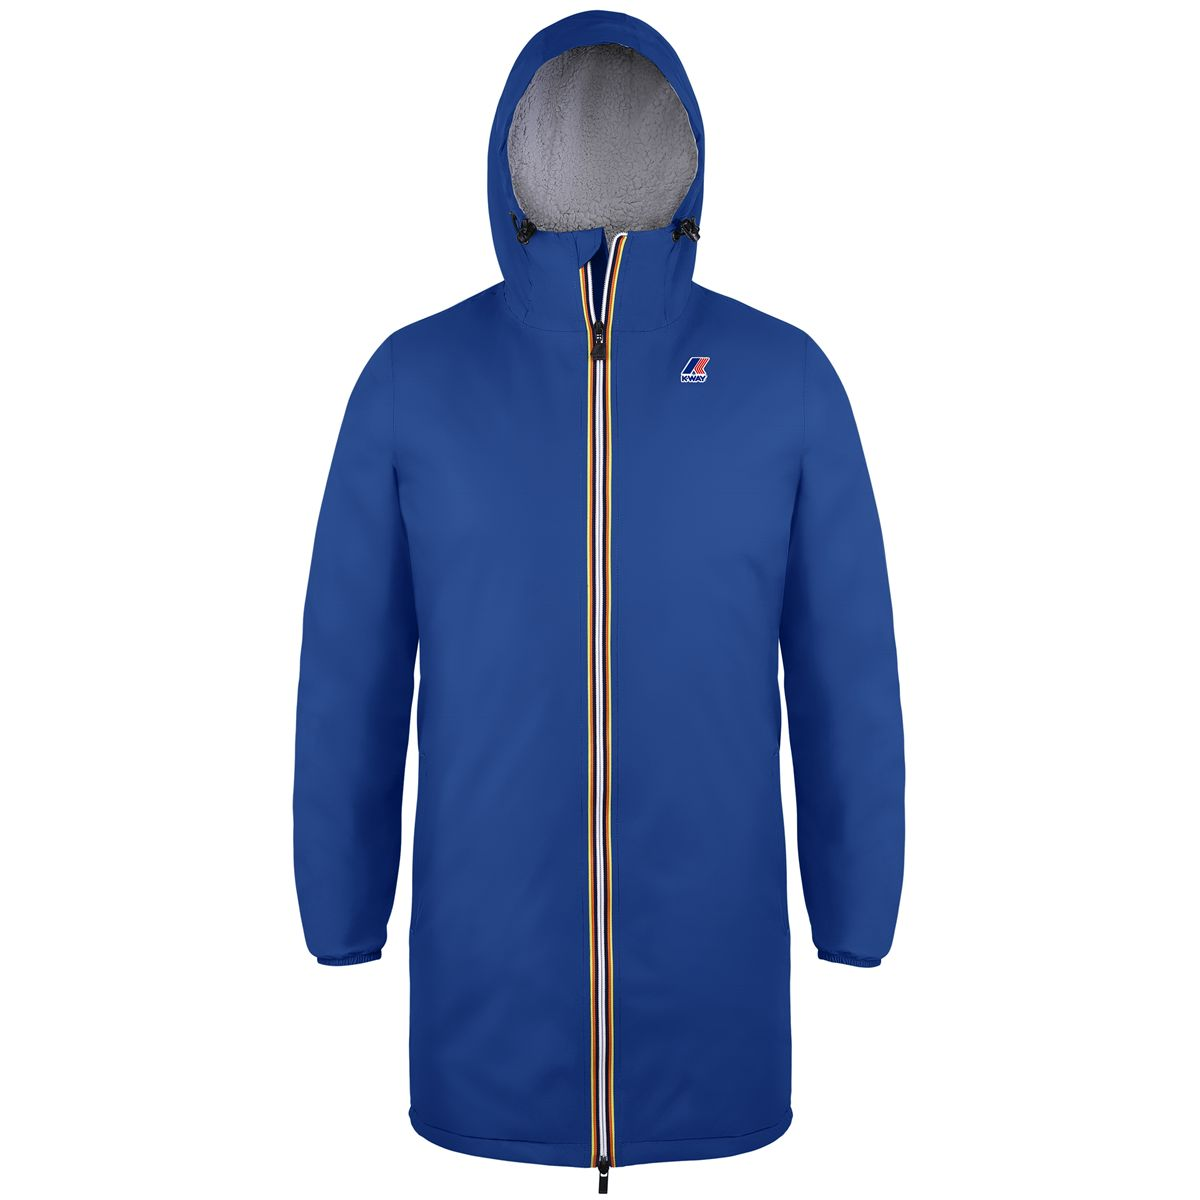 K-Way Jacket LE VRAI 3.0 EIFFEL ORSETTO Long